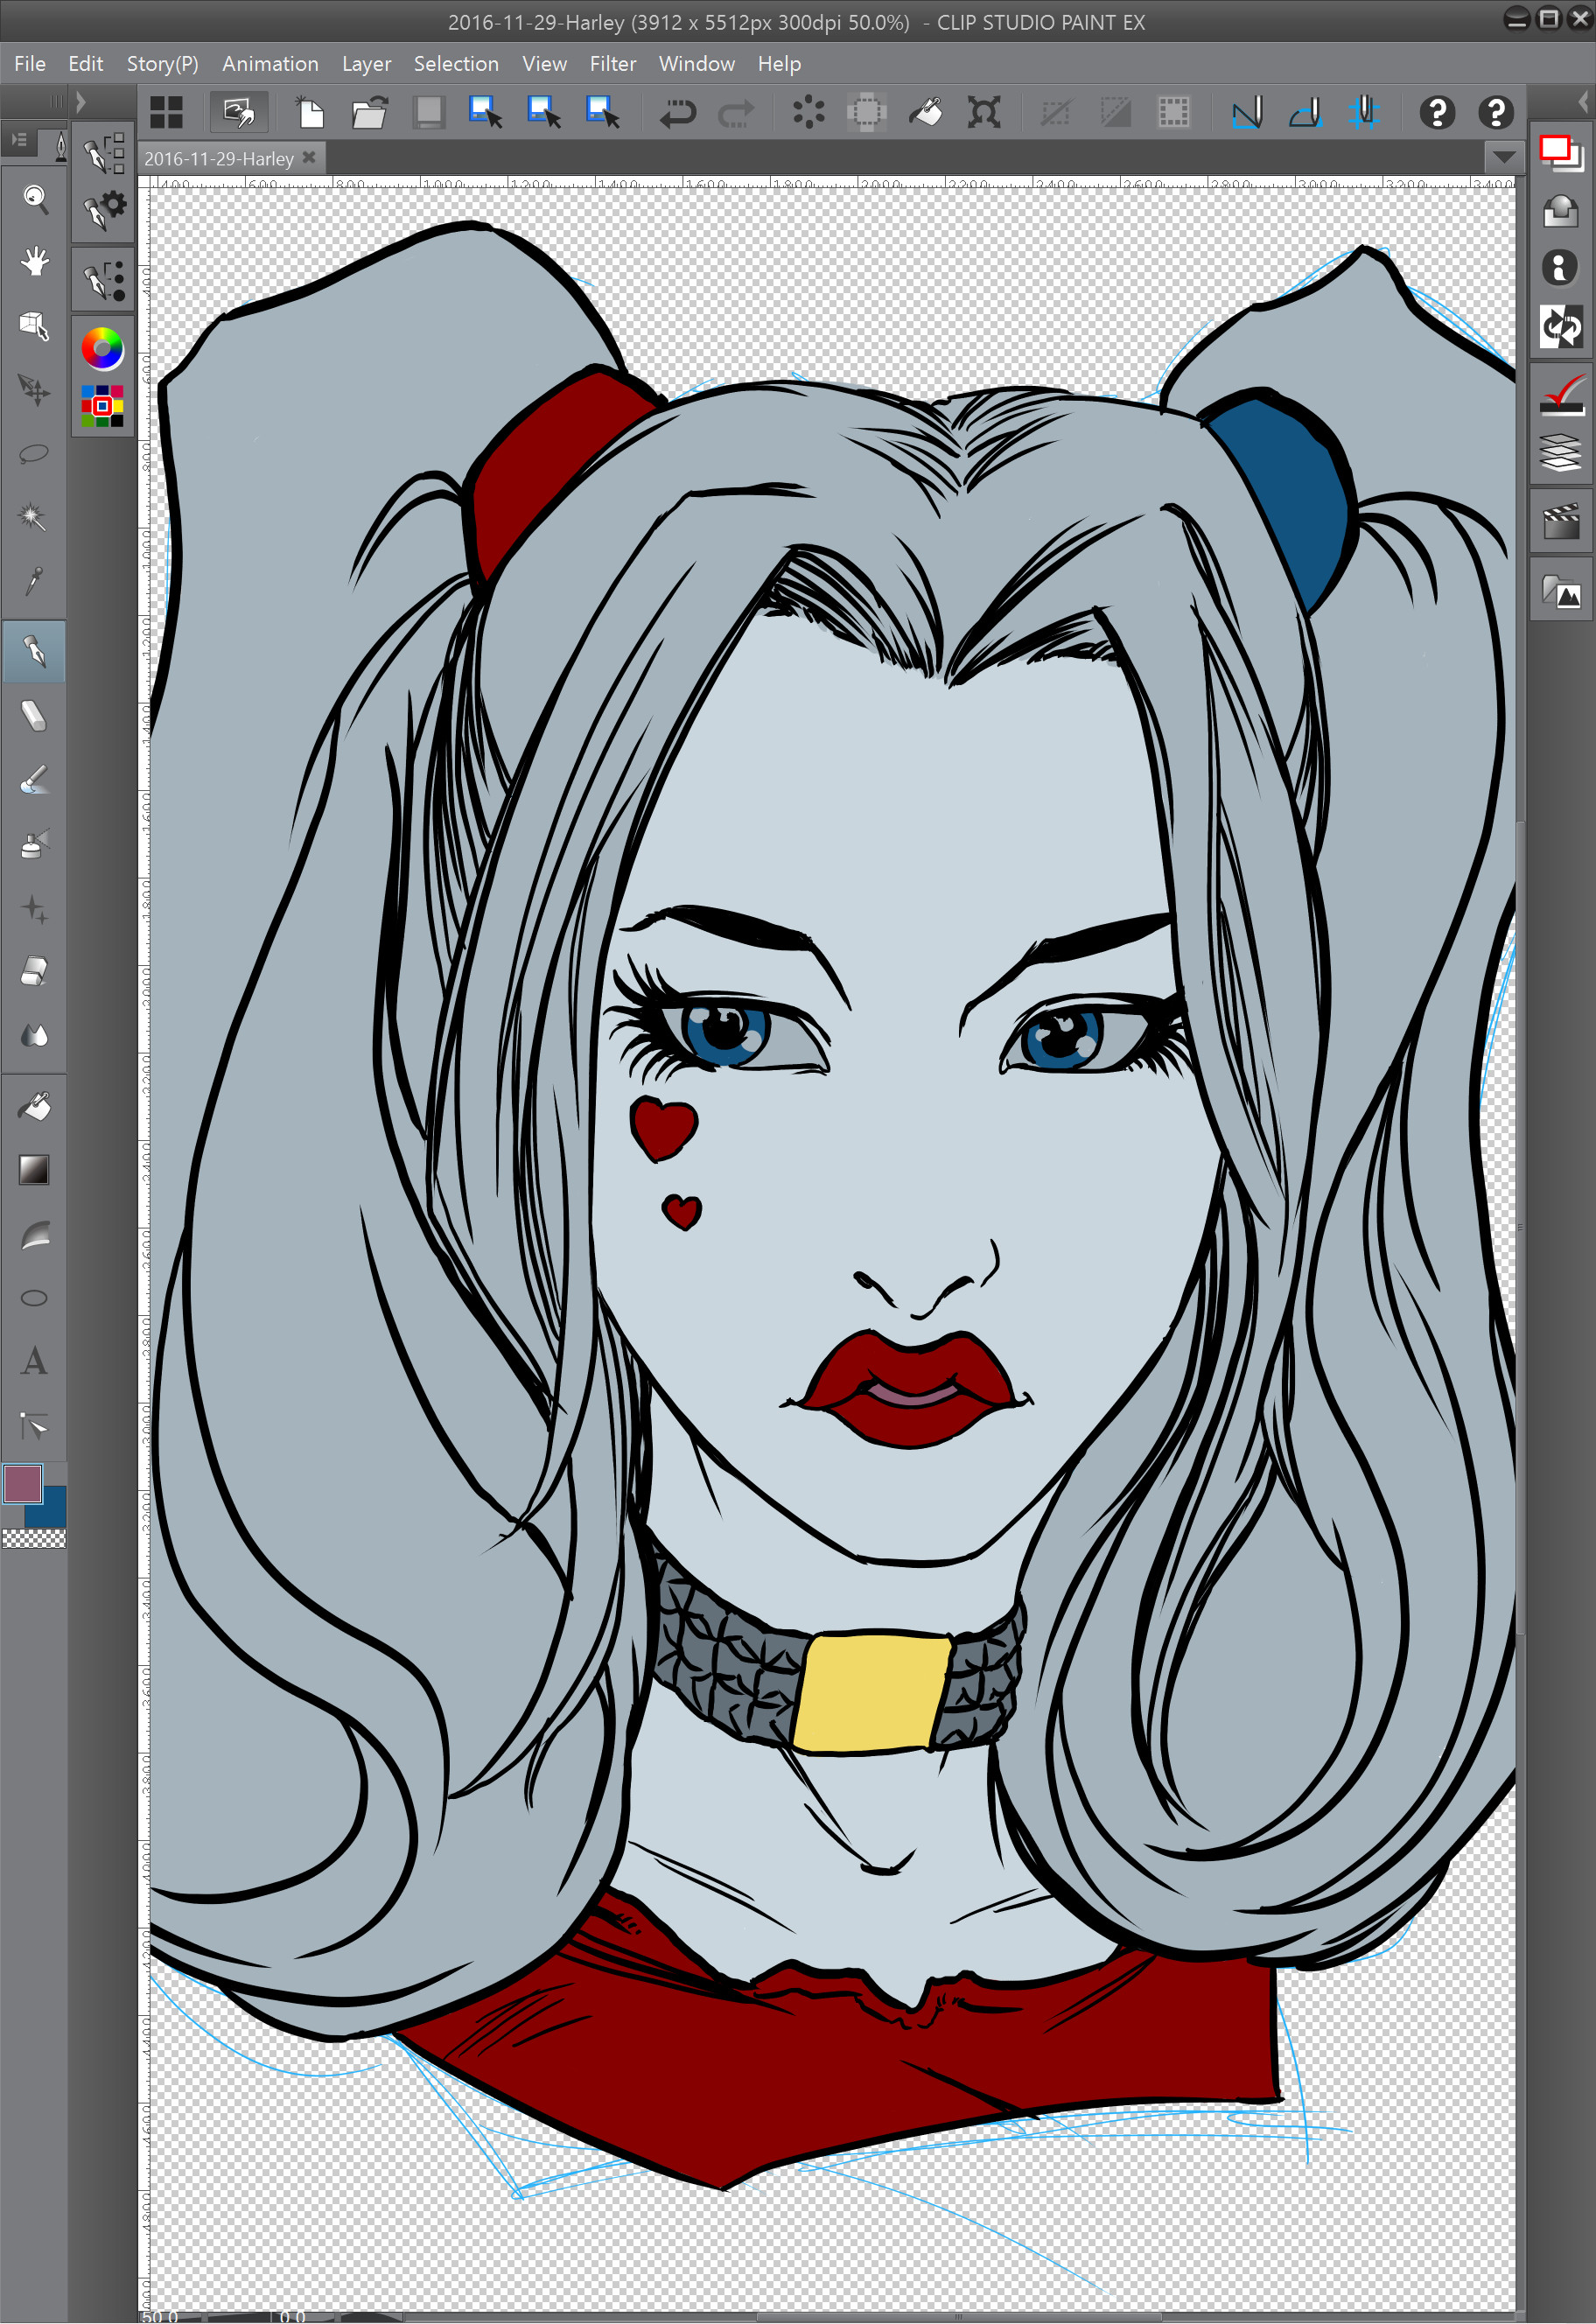 03 - Painting the Flat color